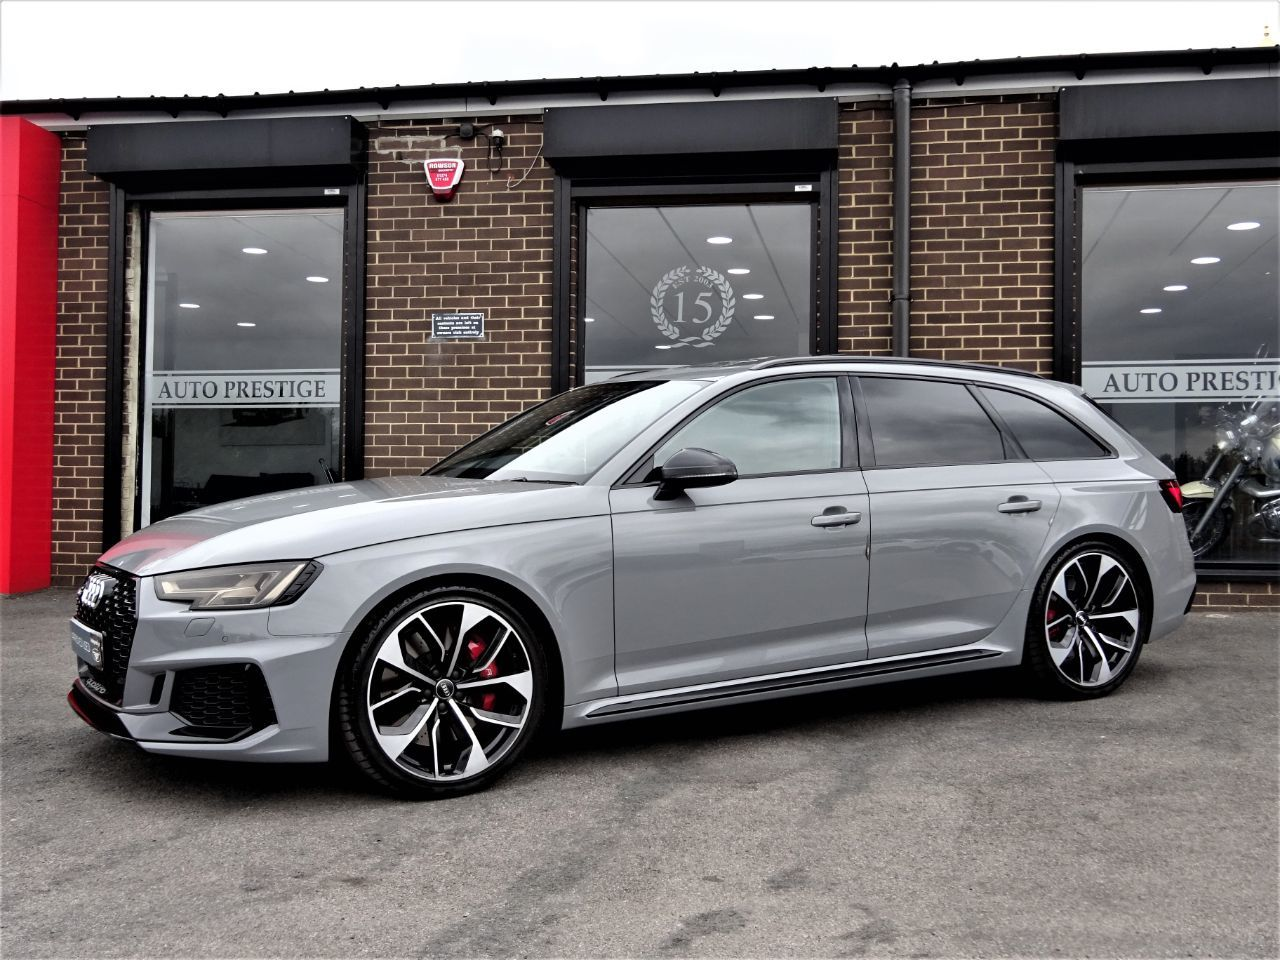 Audi RS4 2.9 TFSI Quattro 5dr Tip tronic AS NEW MASSIVE SPEC WITH NEARLY ALL OPTIONS VATQ Estate Petrol Nardo GreyAudi RS4 2.9 TFSI Quattro 5dr Tip tronic AS NEW MASSIVE SPEC WITH NEARLY ALL OPTIONS VATQ Estate Petrol Nardo Grey at Autoprestige Bradford